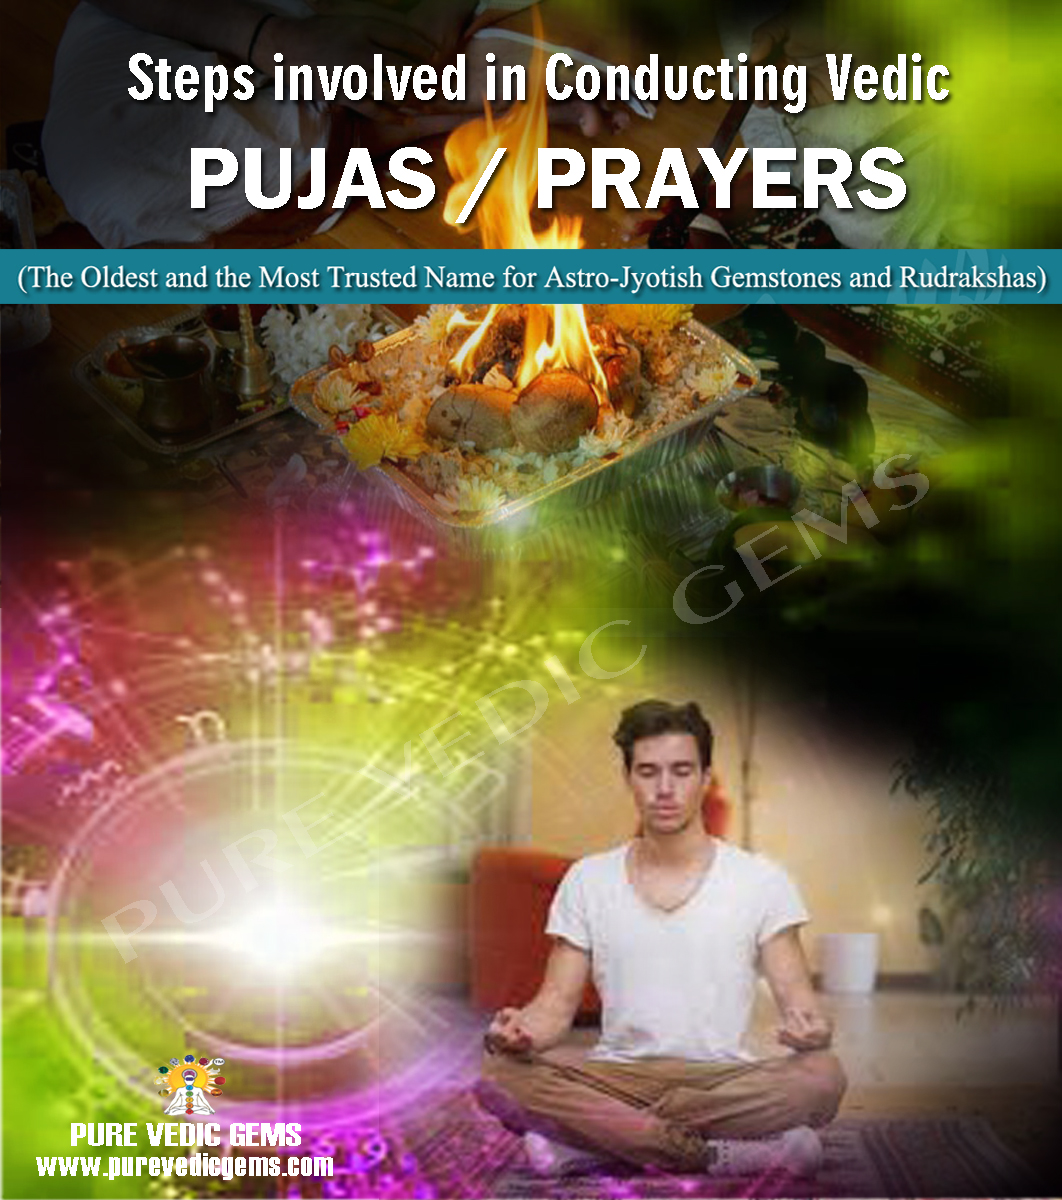 Steps involved in Conducting Pujas-Prayers